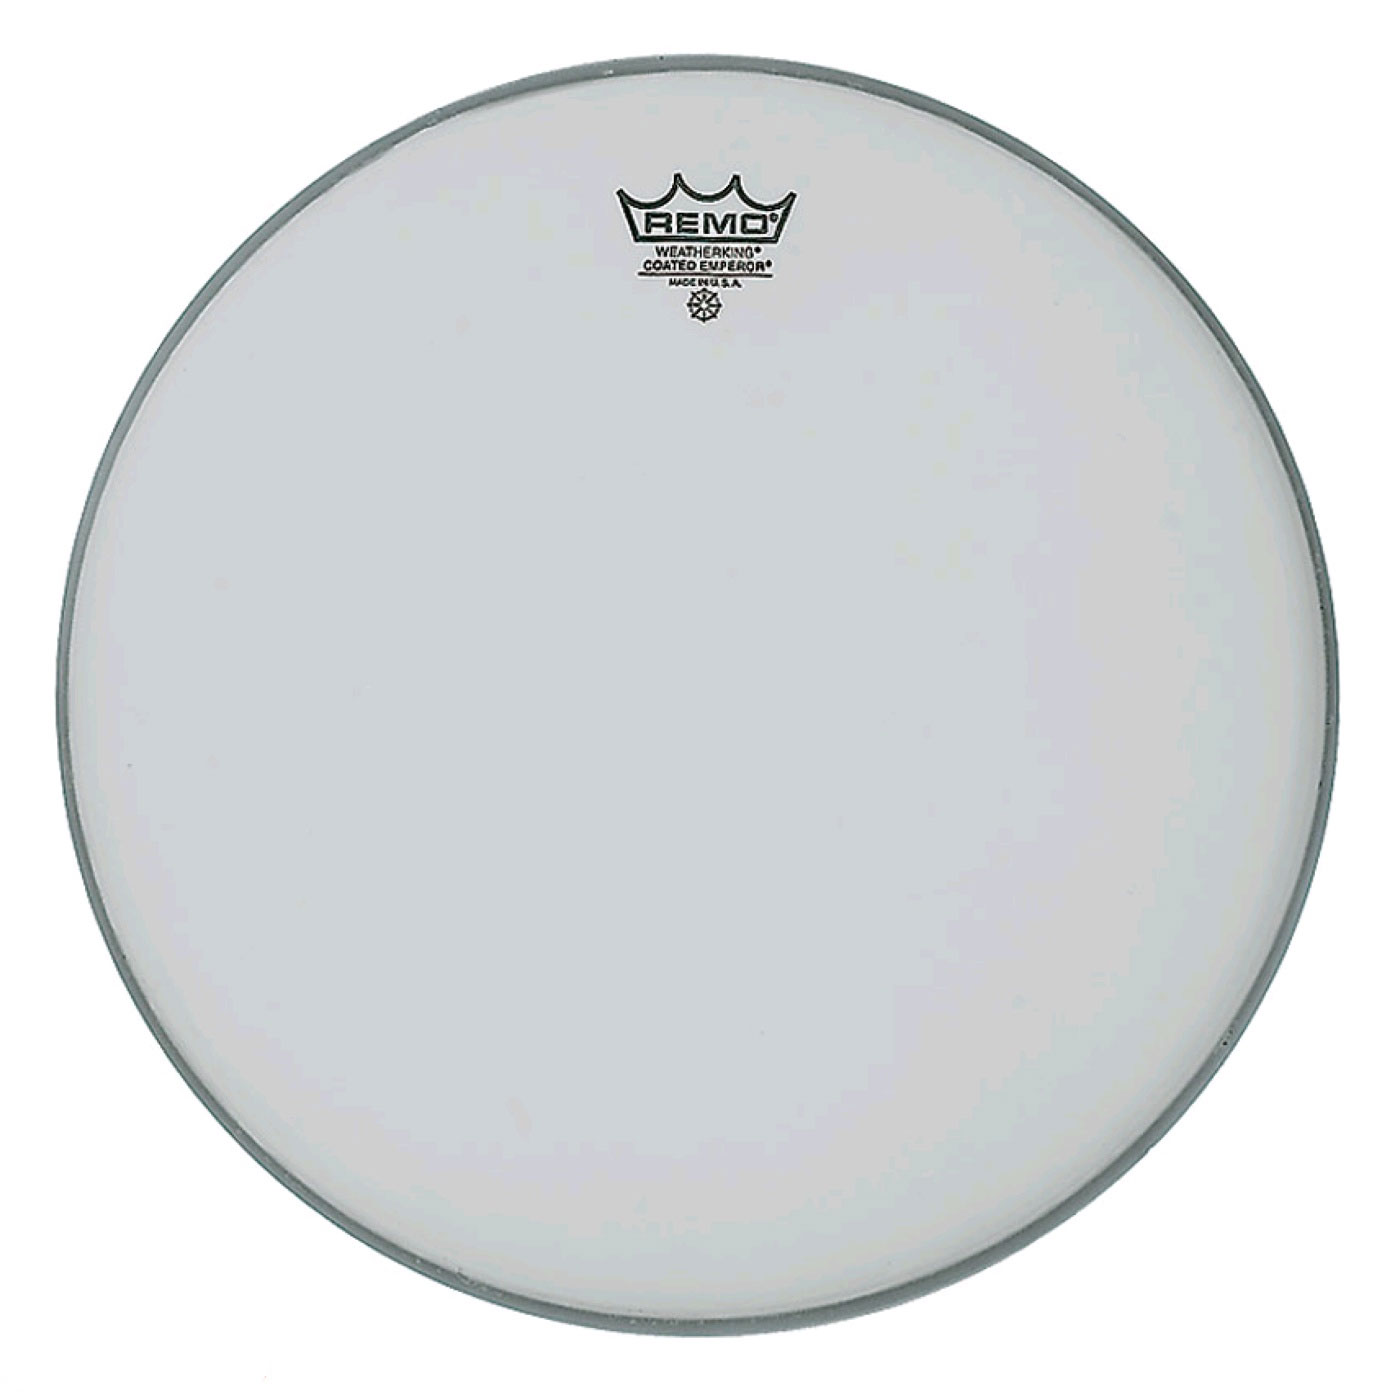 "Remo 12"" Emperor Coated Drum Head"